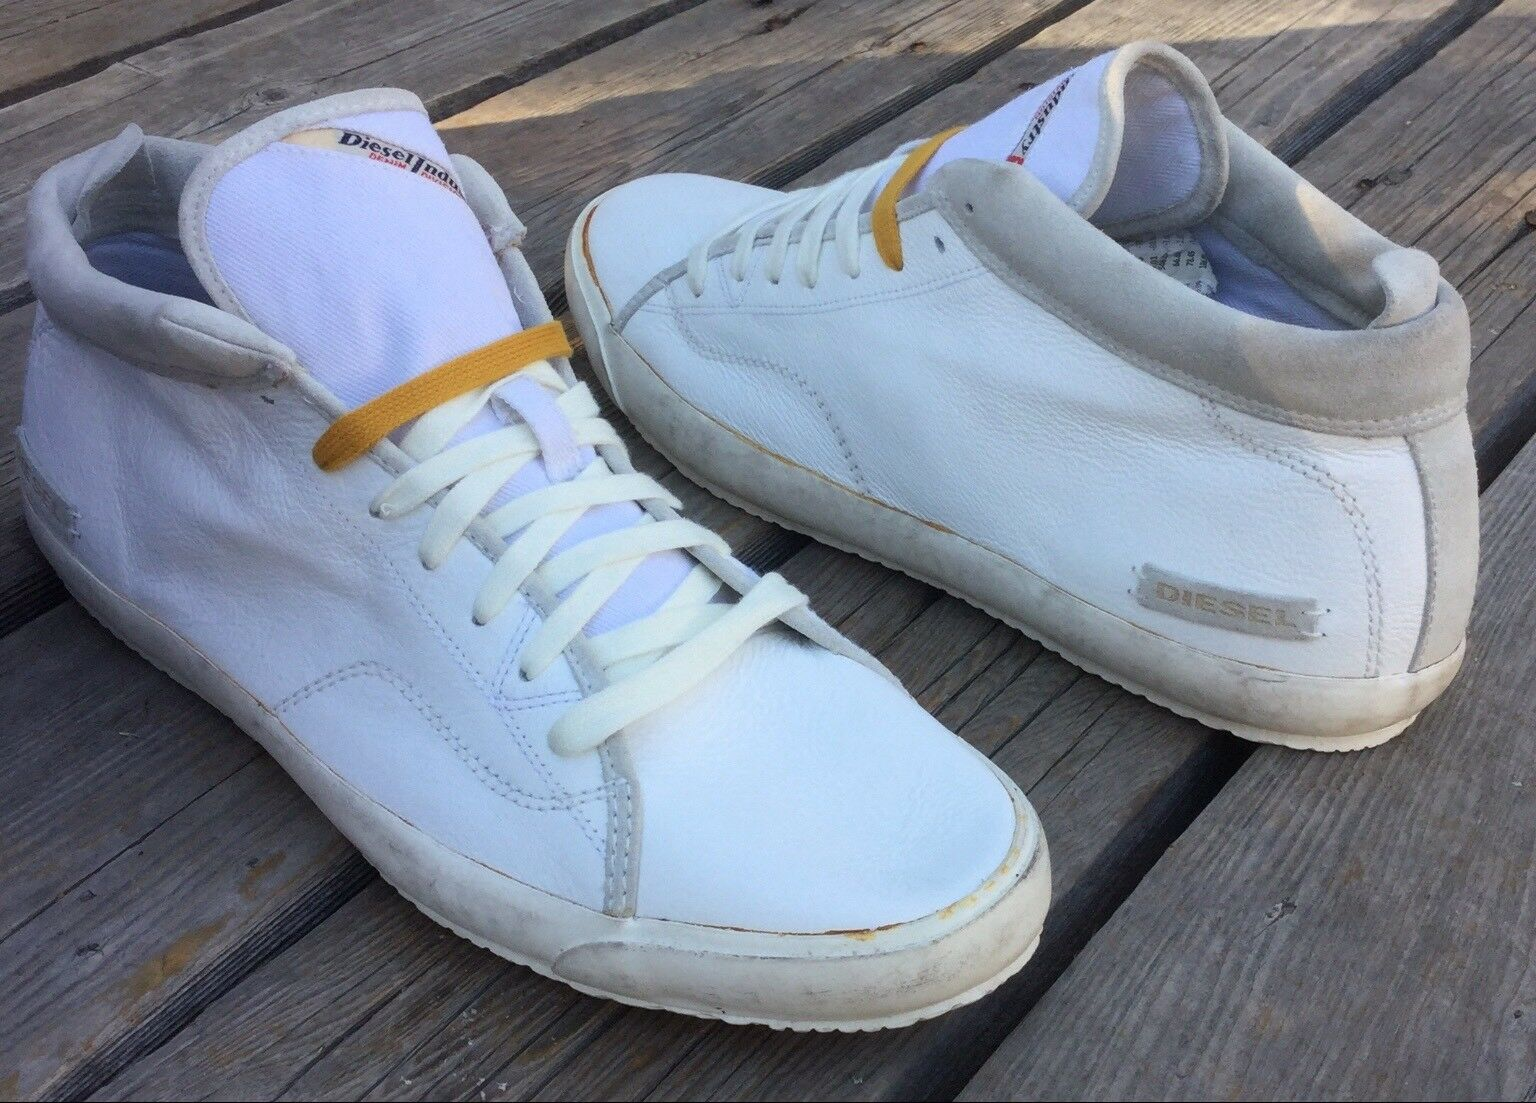 New Mens Diesel Midday Fashion Sneakers Sz 13 White Leather & Suede Casual Shoes